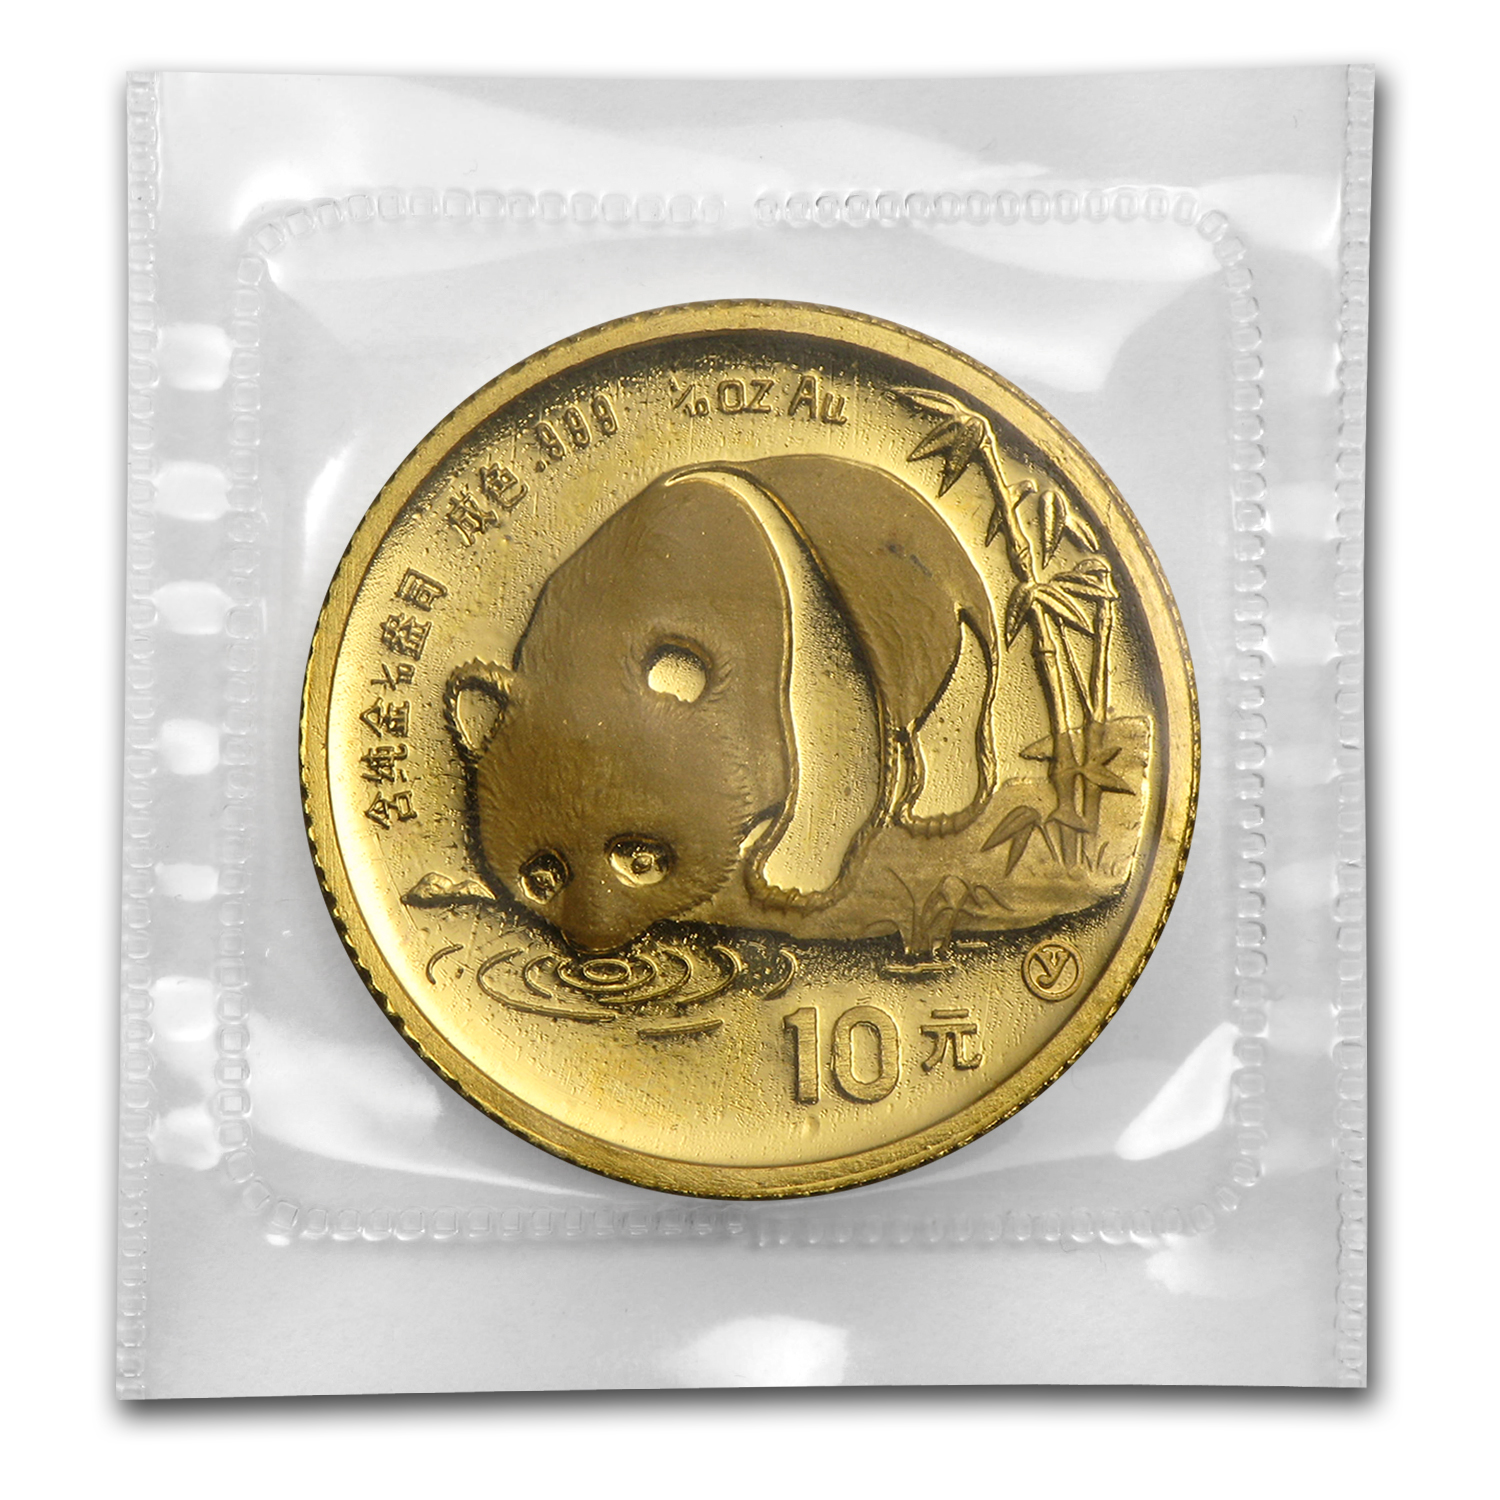 1987-Y 1/10 oz Gold Chinese Panda BU (Sealed)